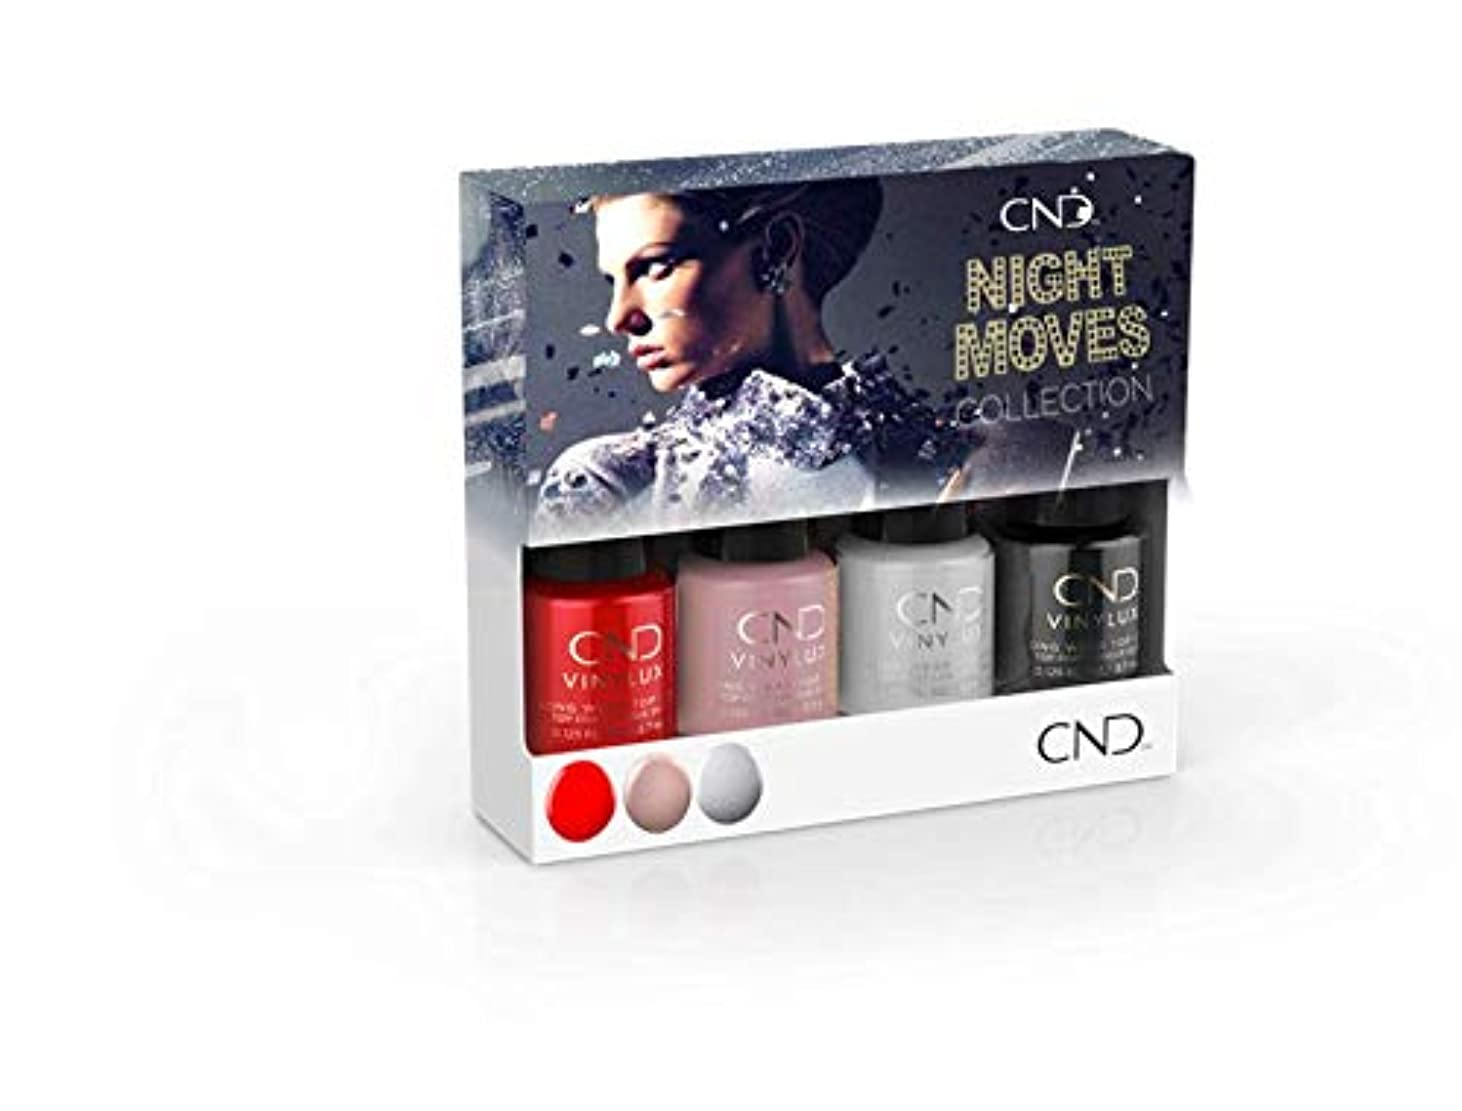 仕様モンゴメリー不確実CND Vinylux - Night Moves The Collection - Mini 4pk - 3.7 mL / 0.125 oz